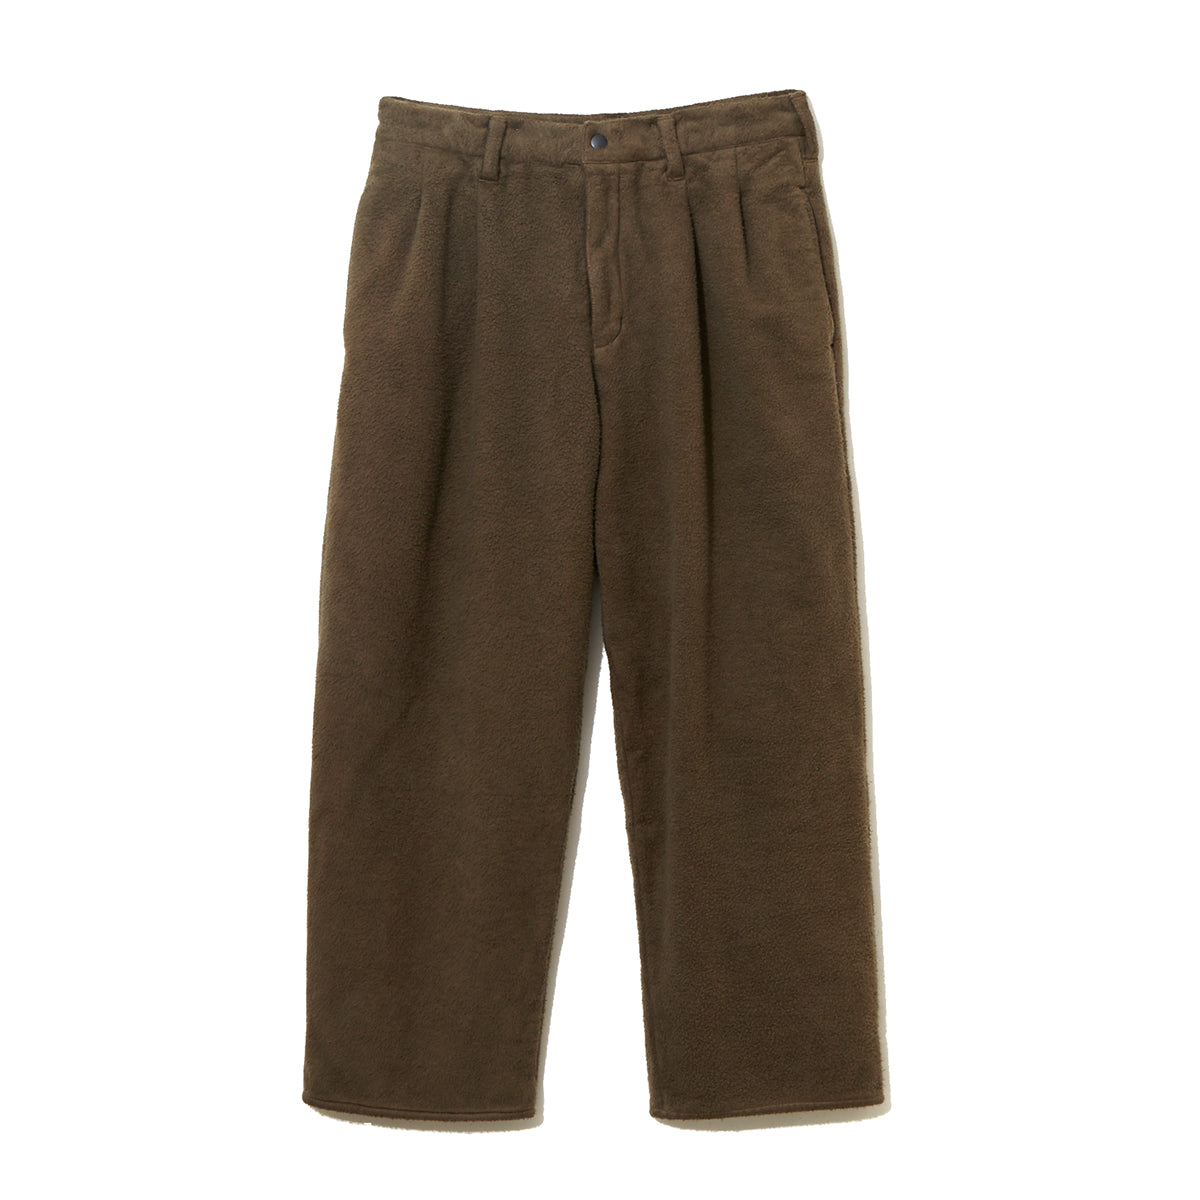 FLEECE PANTS / BROWN (19A-NSA-PT-04)